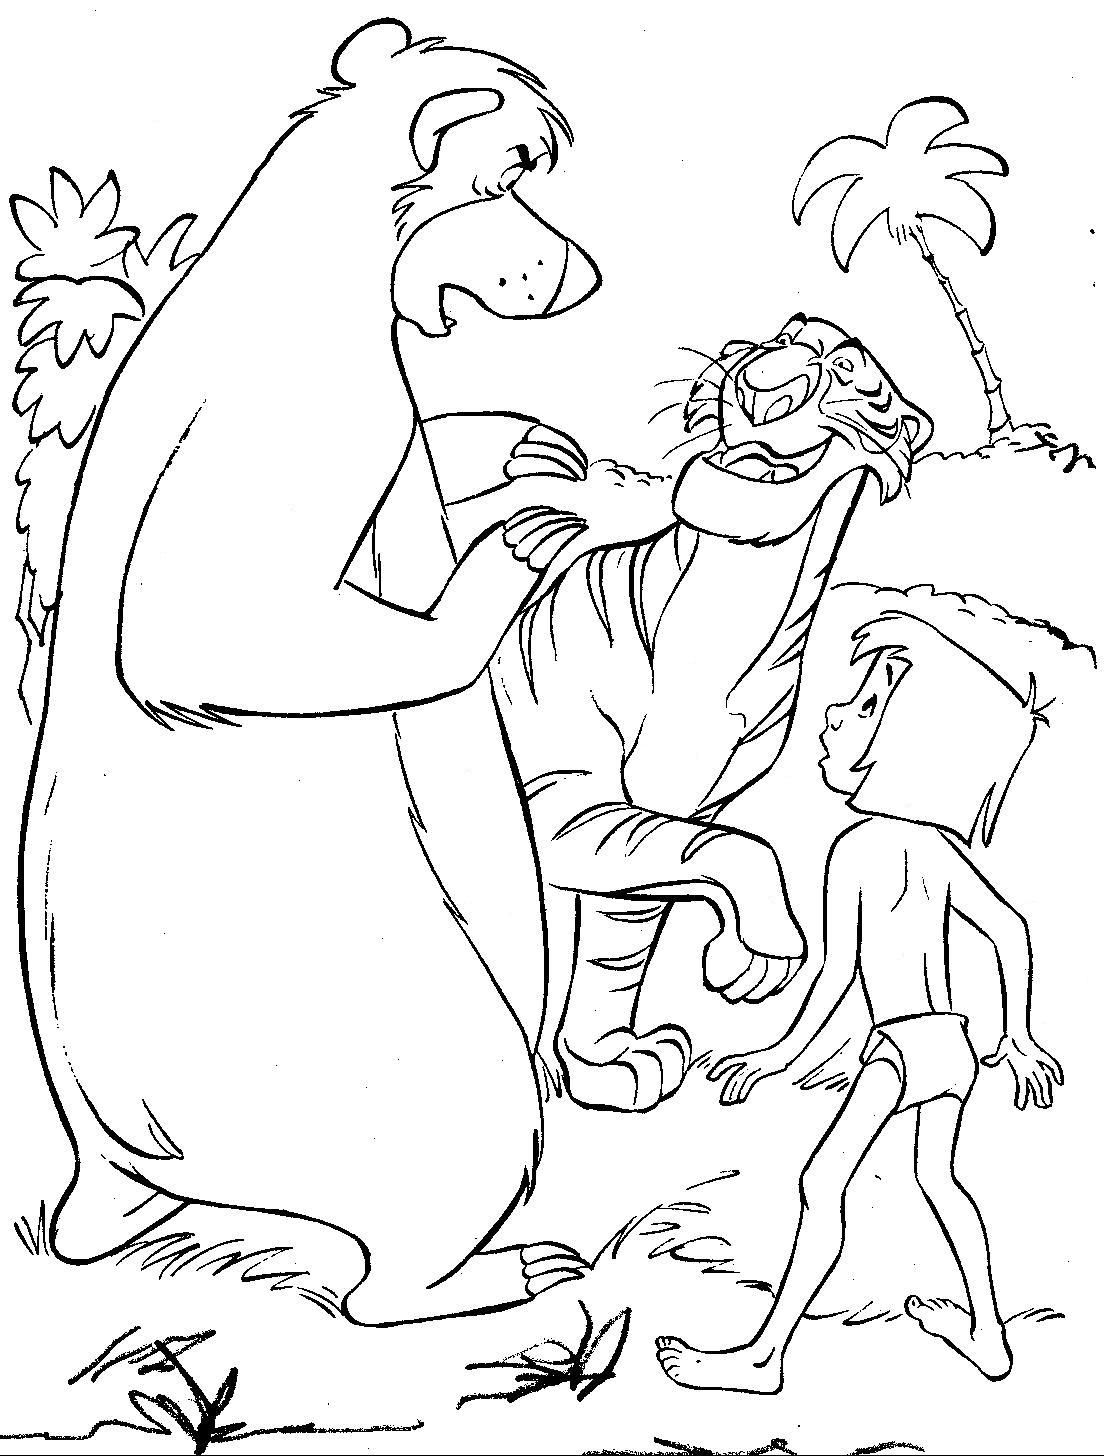 Jb6 Jpg 1104 1456 Free Disney Coloring Pages Disney Coloring Pages Coloring Books